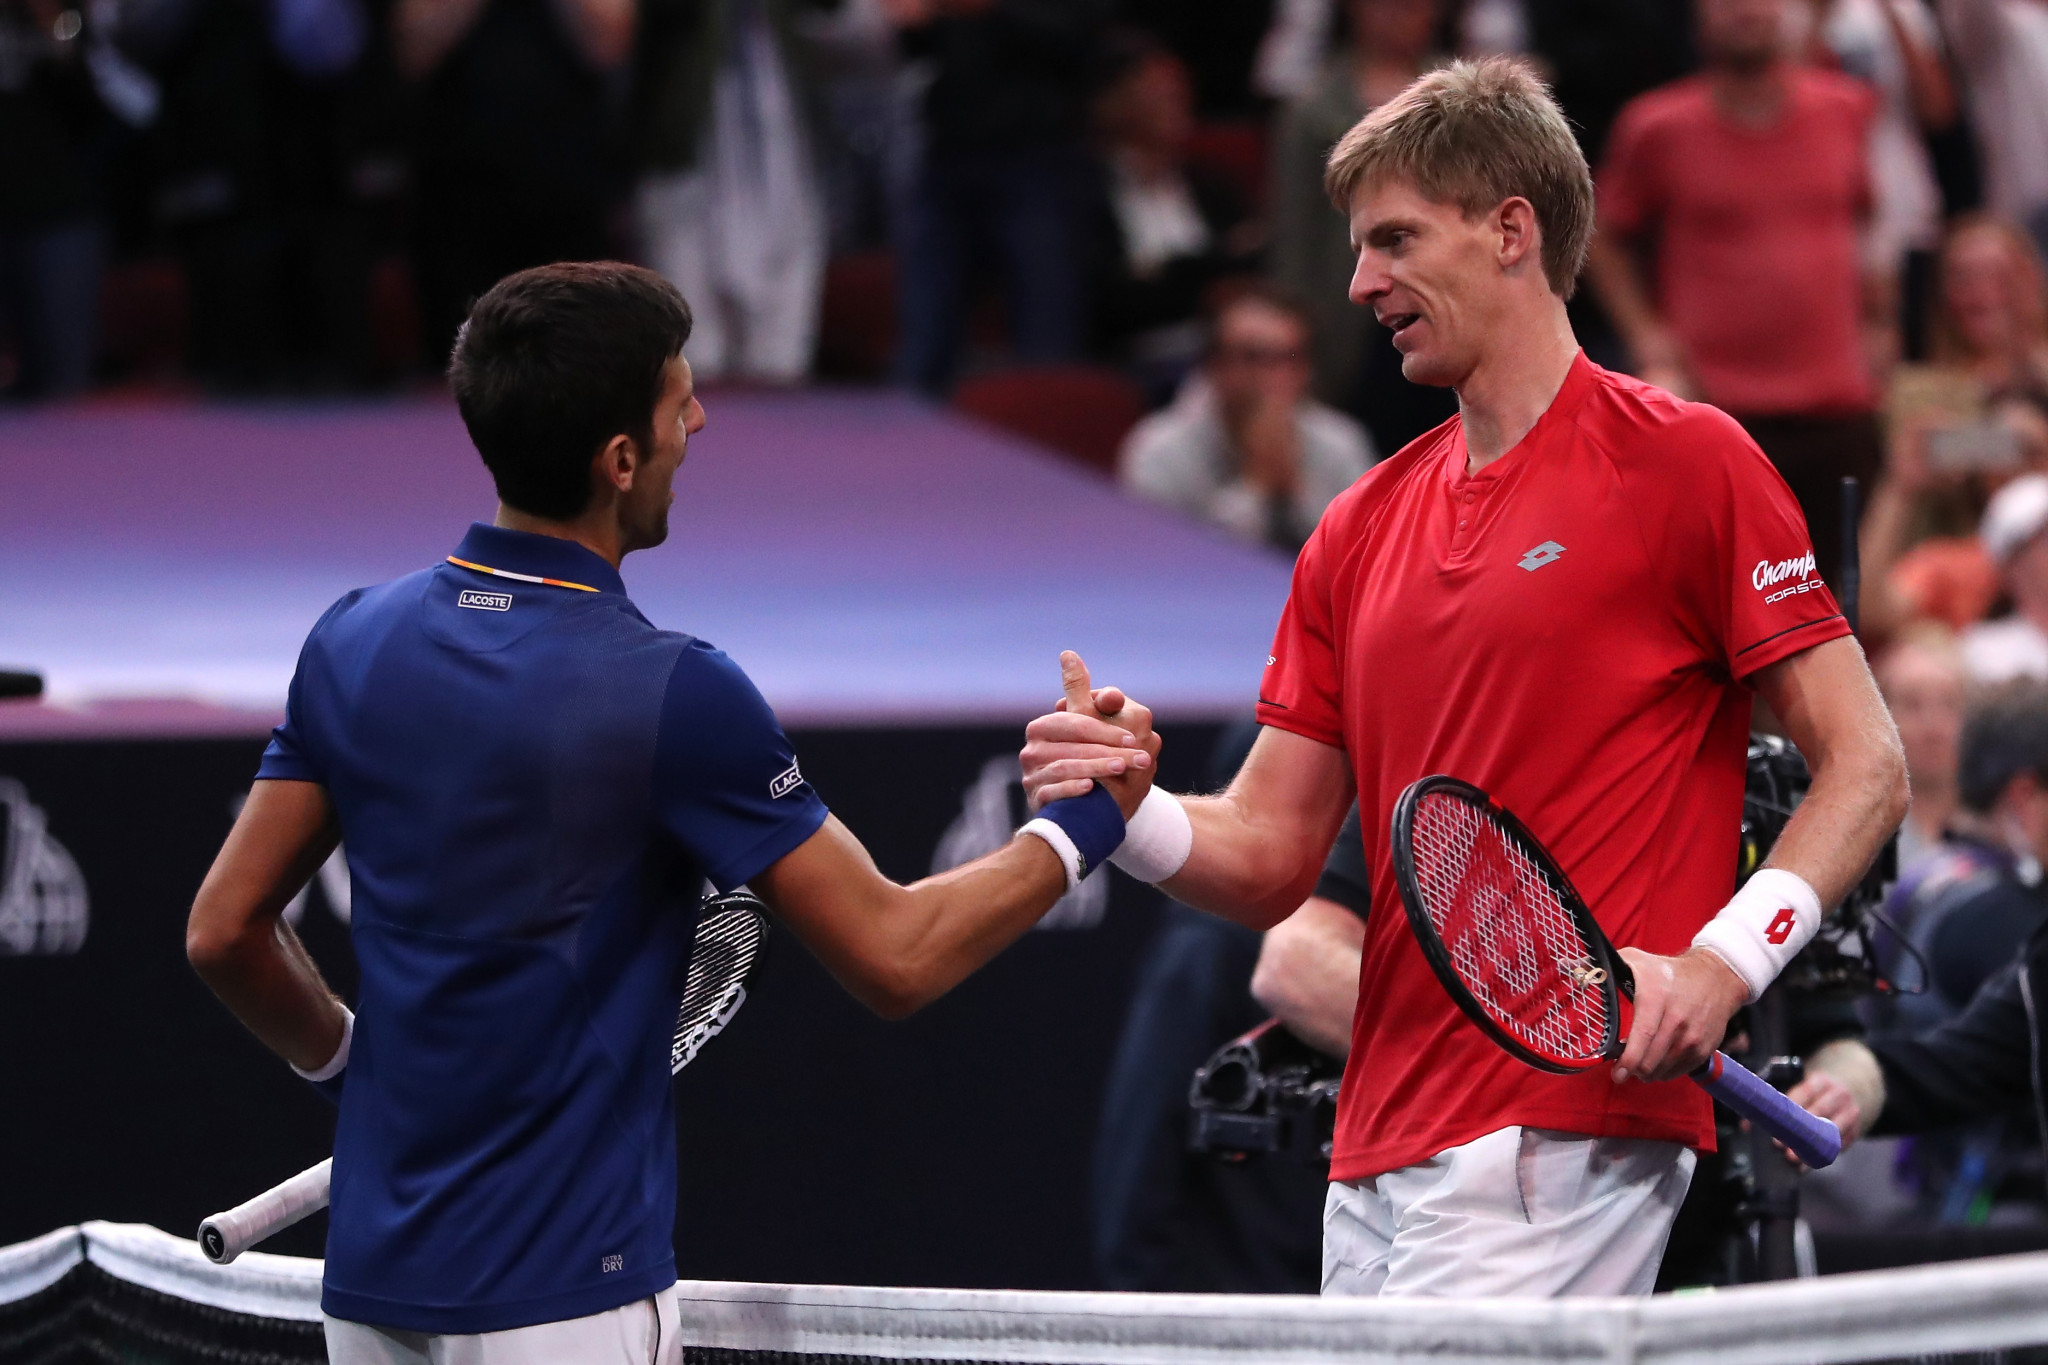 Anderson avenges Wimbledon final defeat to Djokovic but Team World still trail going into final day of 2018 Laver Cup